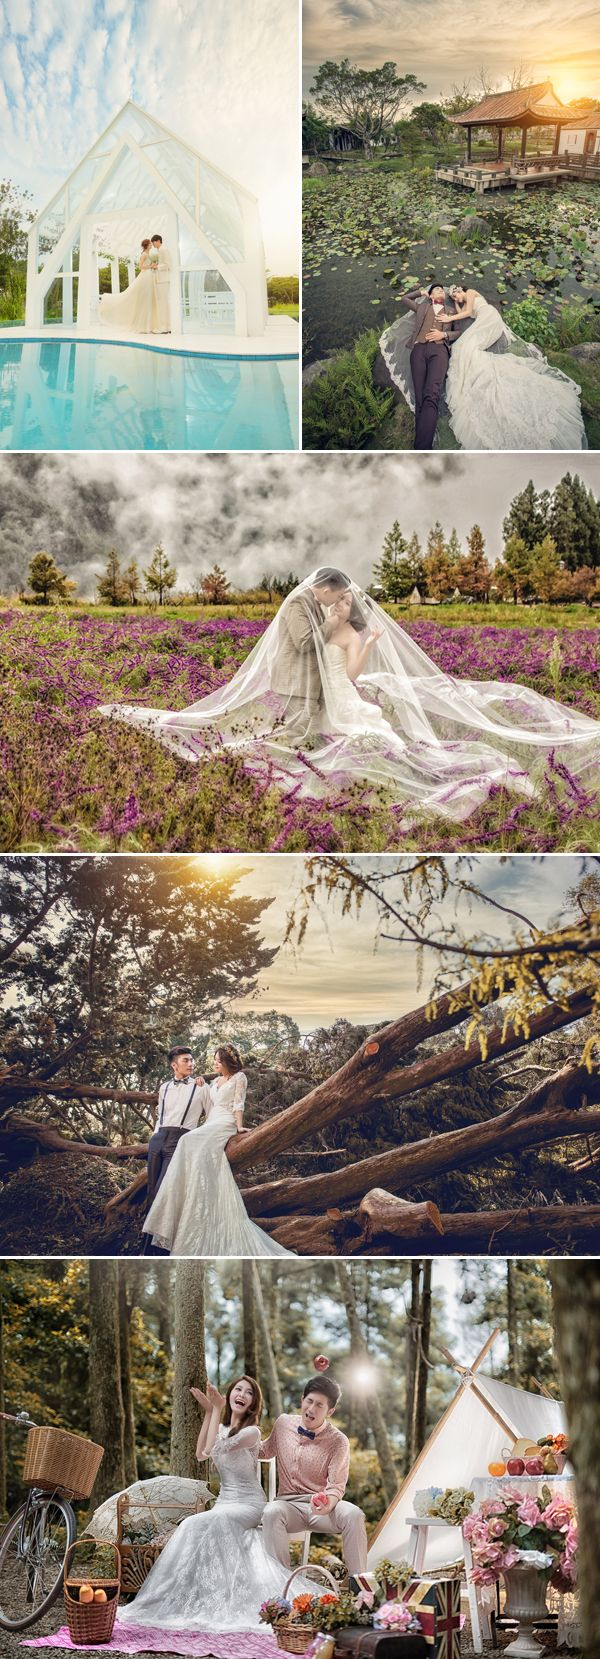 Wedding gowns prewedding photo package deal from royal wed groom